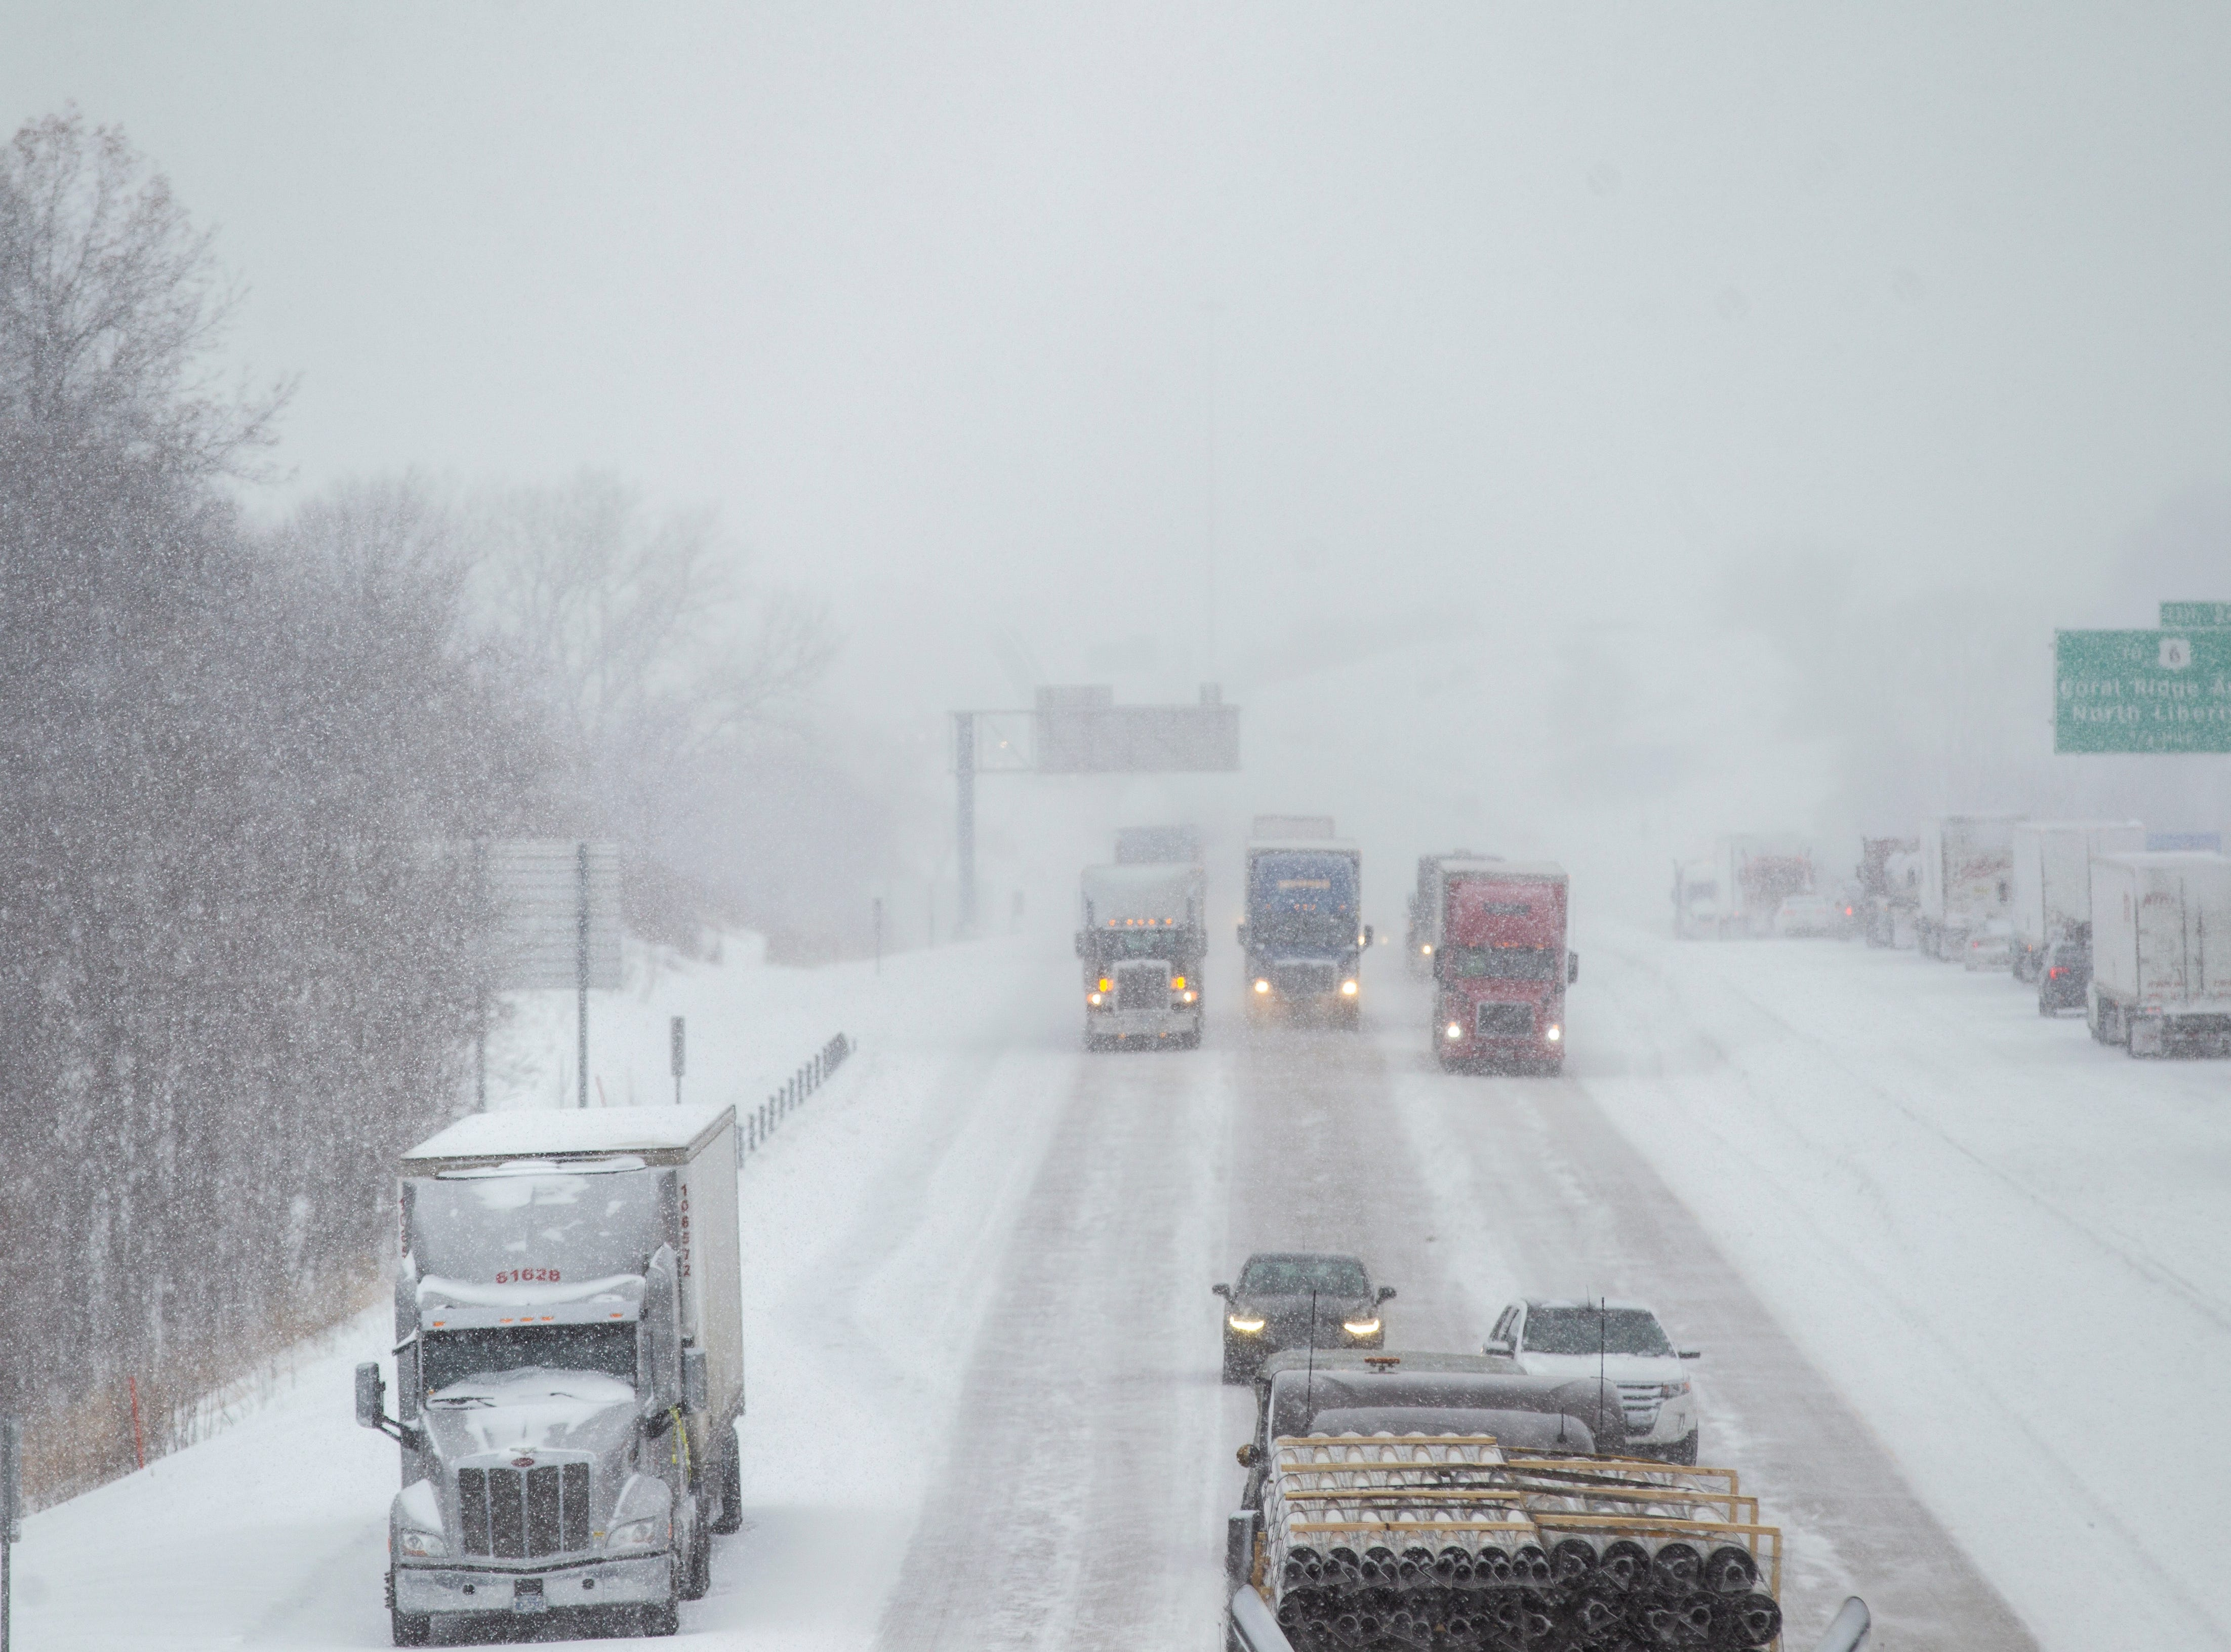 Traffic slows down in eastbound lanes as snow falls on Thursday, Jan. 31, 2019, along Interstate 80 between exits 242 at 1st Avenue and exit 240 for IA 965 in Coralville, Iowa.